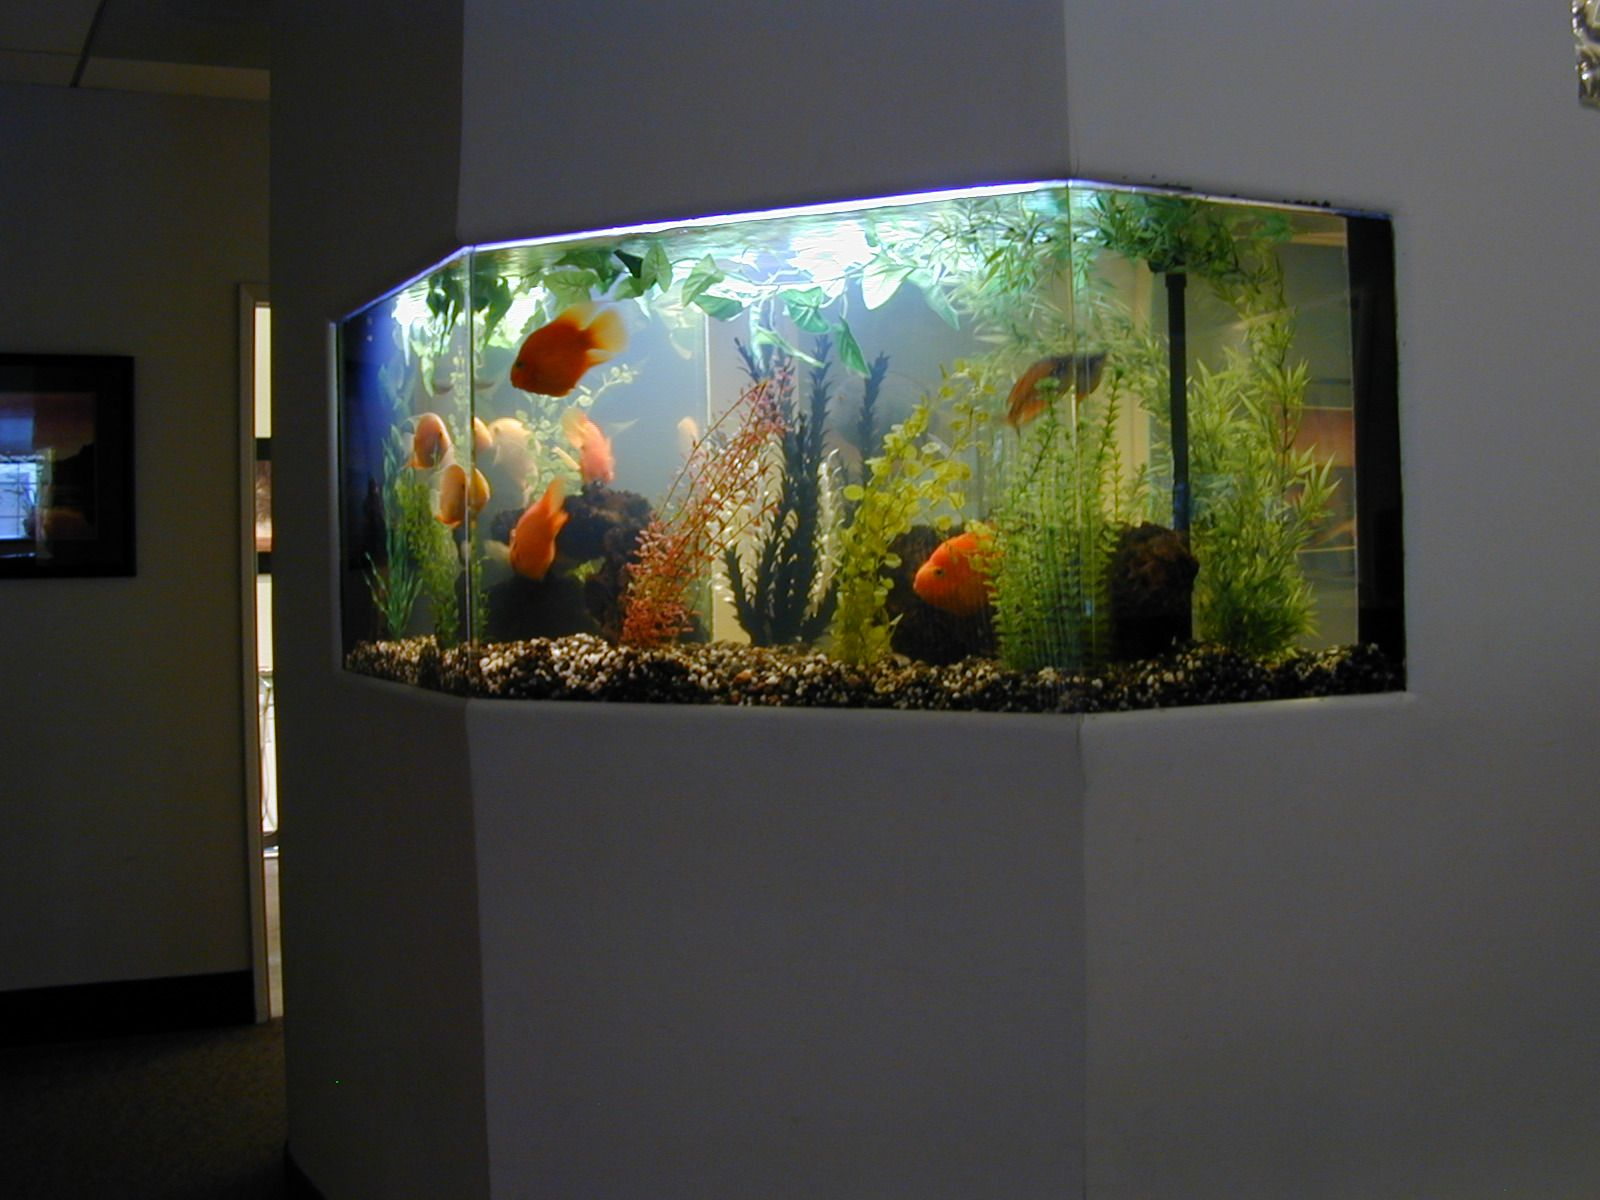 Aquarium fish tank price - 25 Best Ideas About Tanked Aquariums On Pinterest Amazing Aquariums Amazing Fish Tanks And Big Fish Tanks